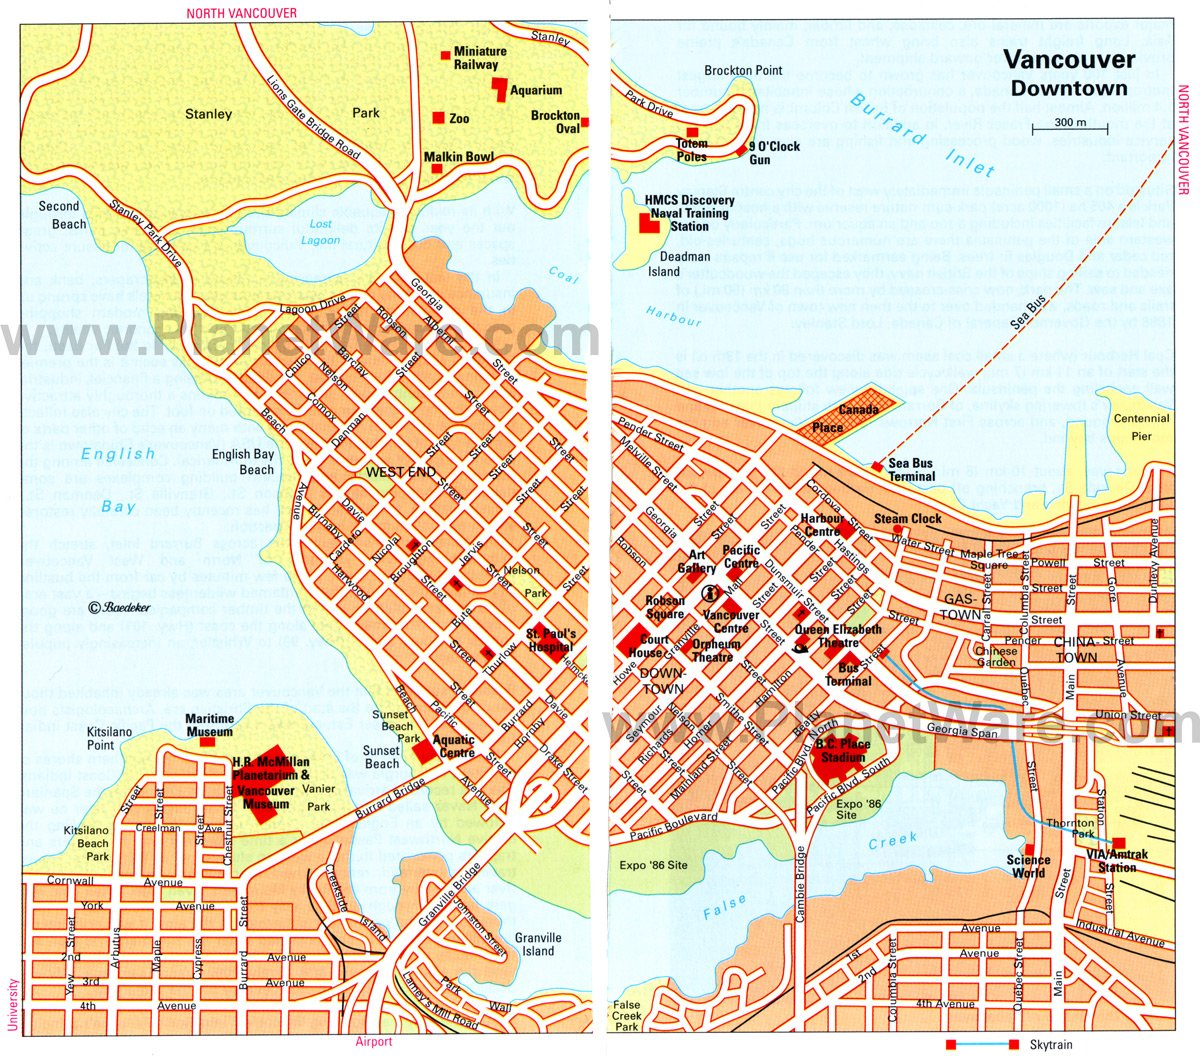 15 TopRated Tourist Attractions in Vancouver – Seattle Washington Map Tourist